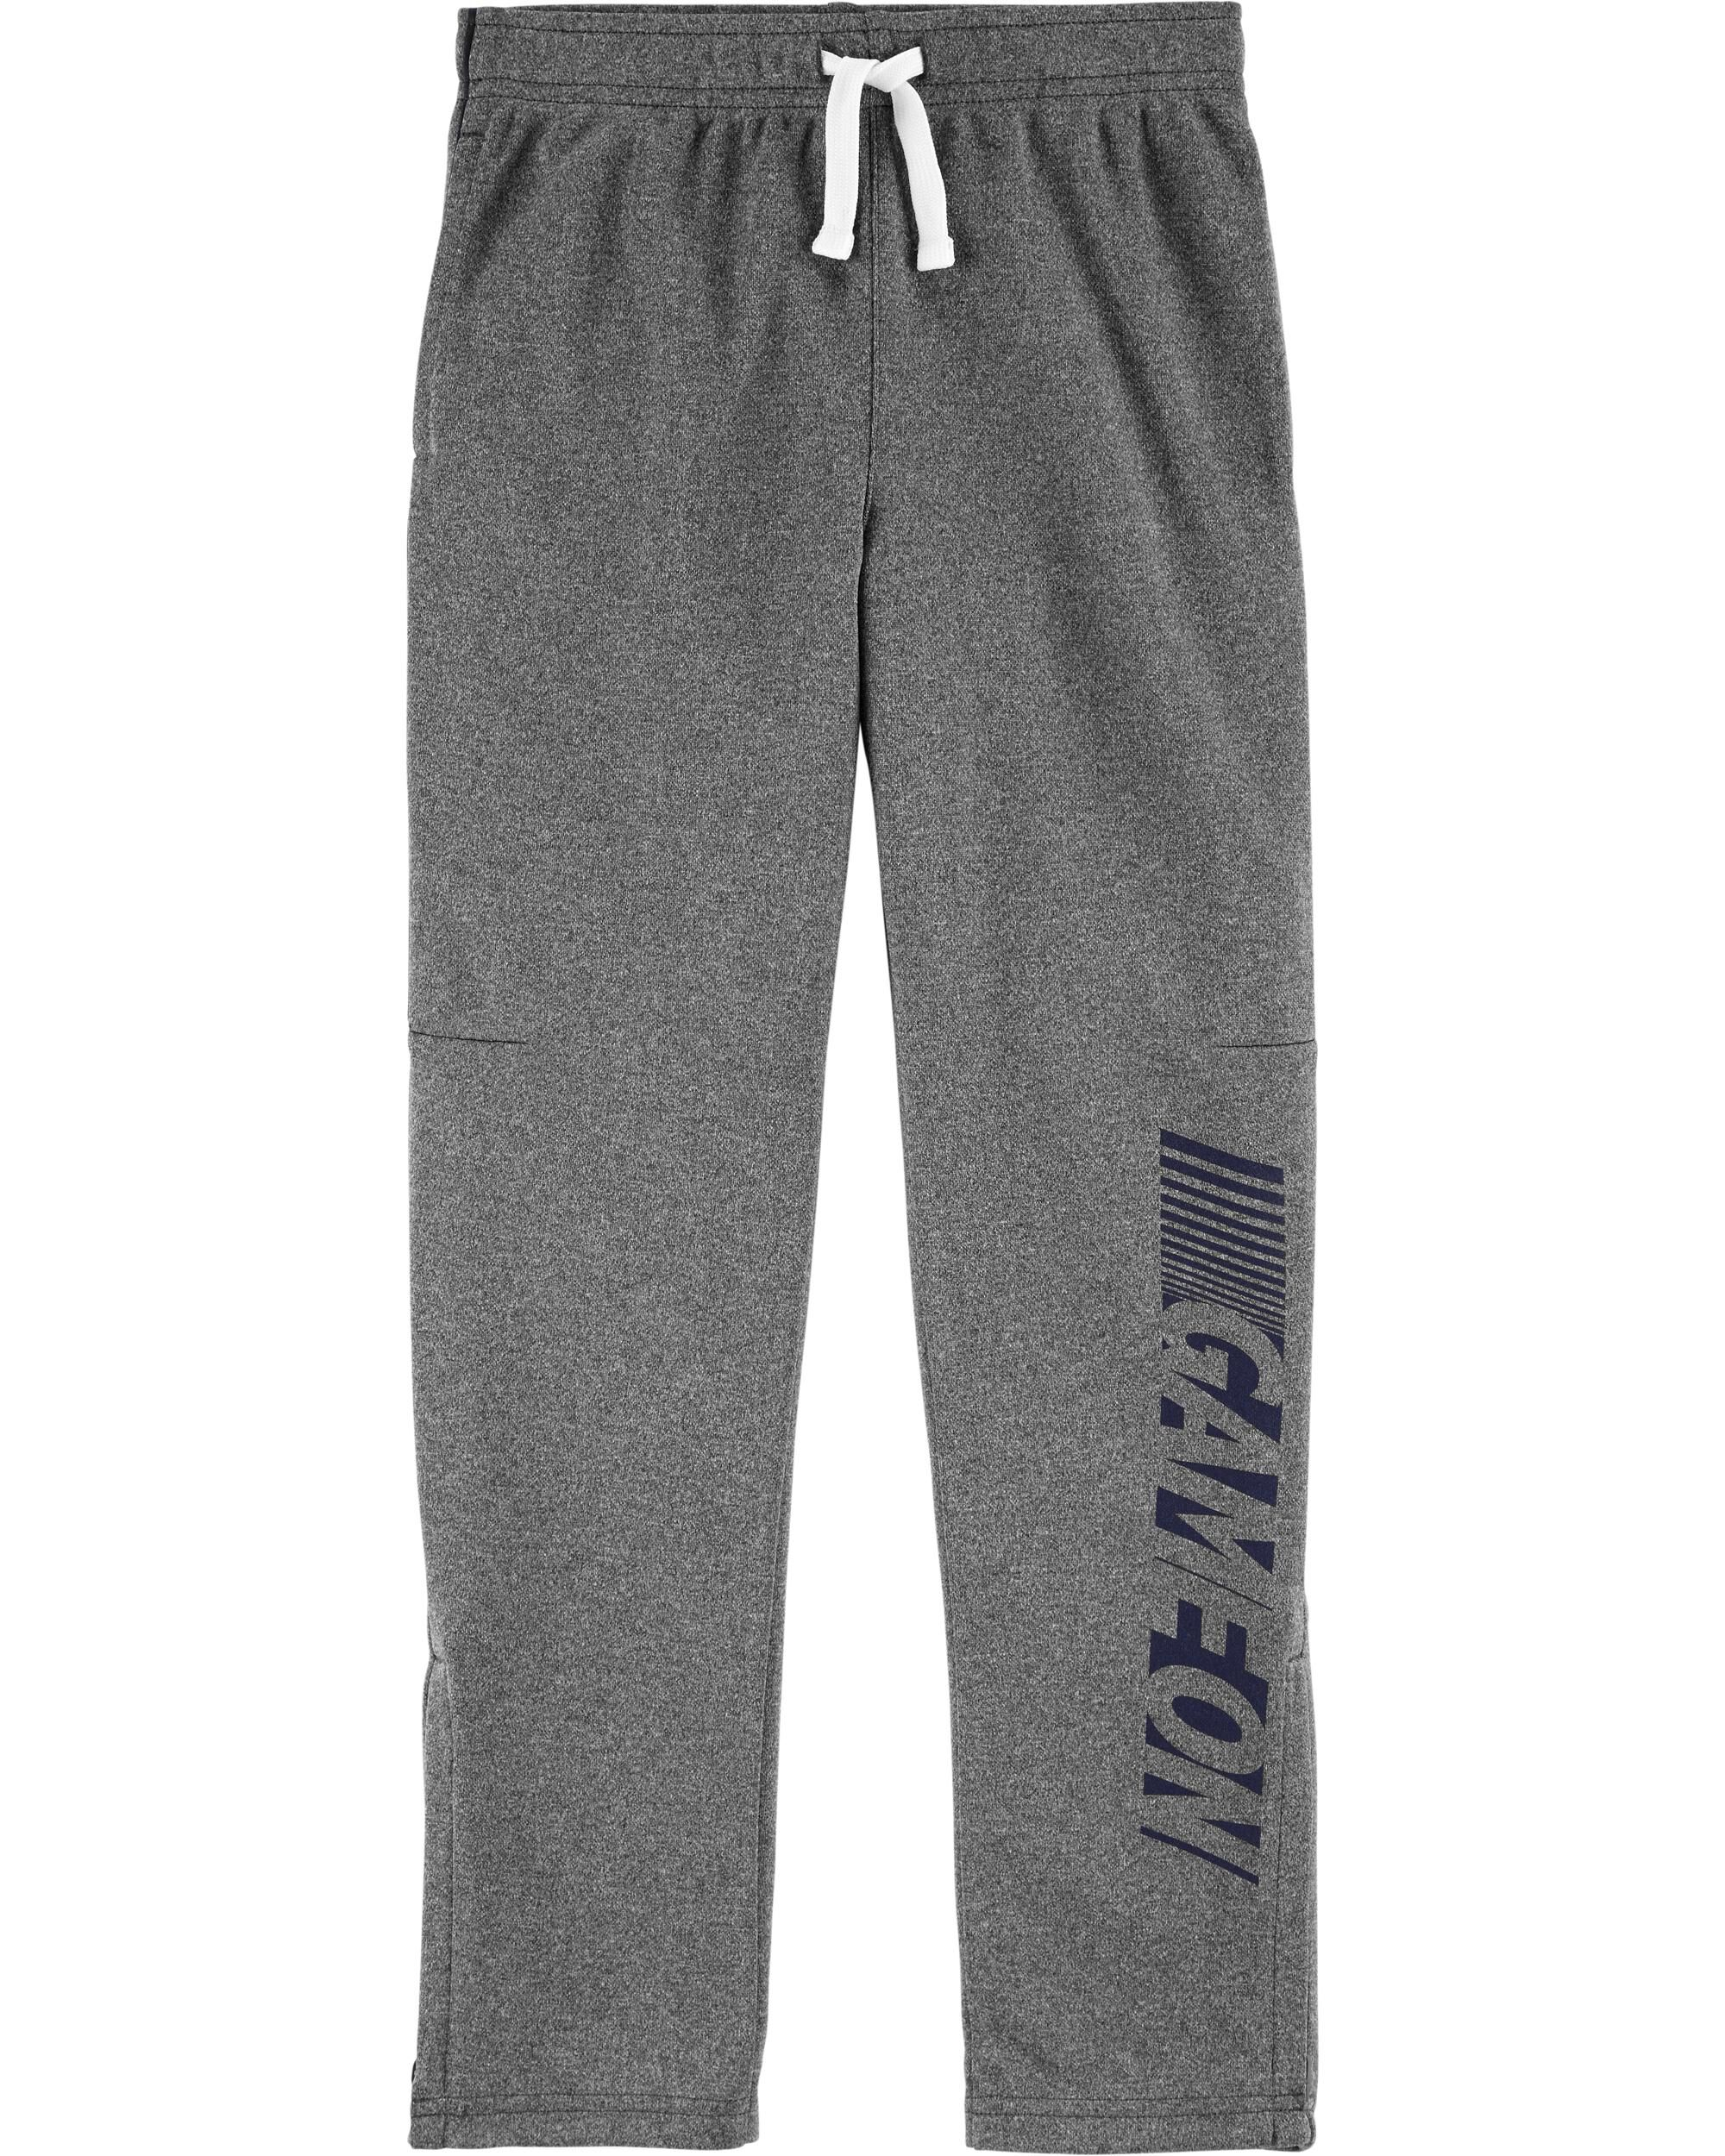 Boys Carters Tricot Active Pants Black Size 5 Brand New